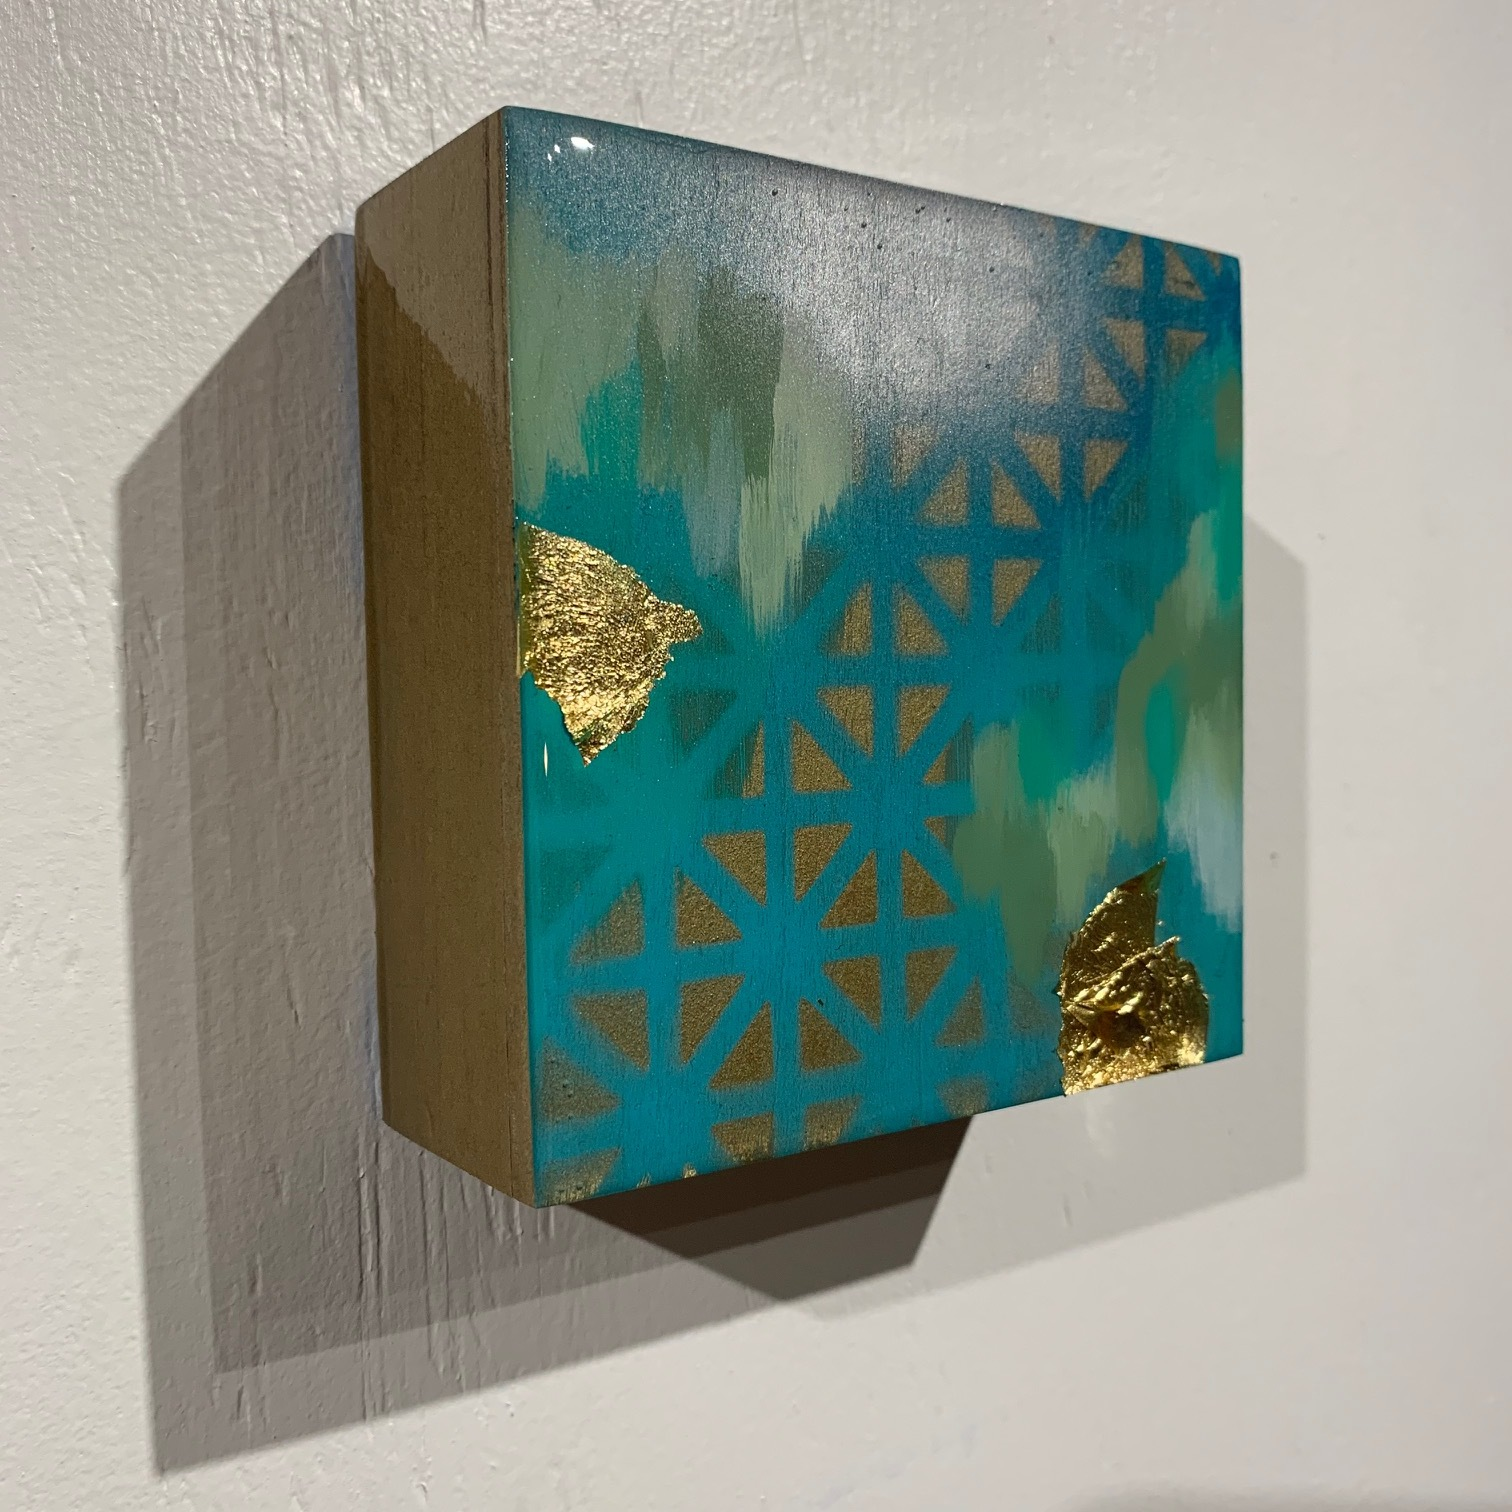 LeahGuzman_ThroatChakra_2018_resin,goldleaf,acrylic_$100.00.jpg